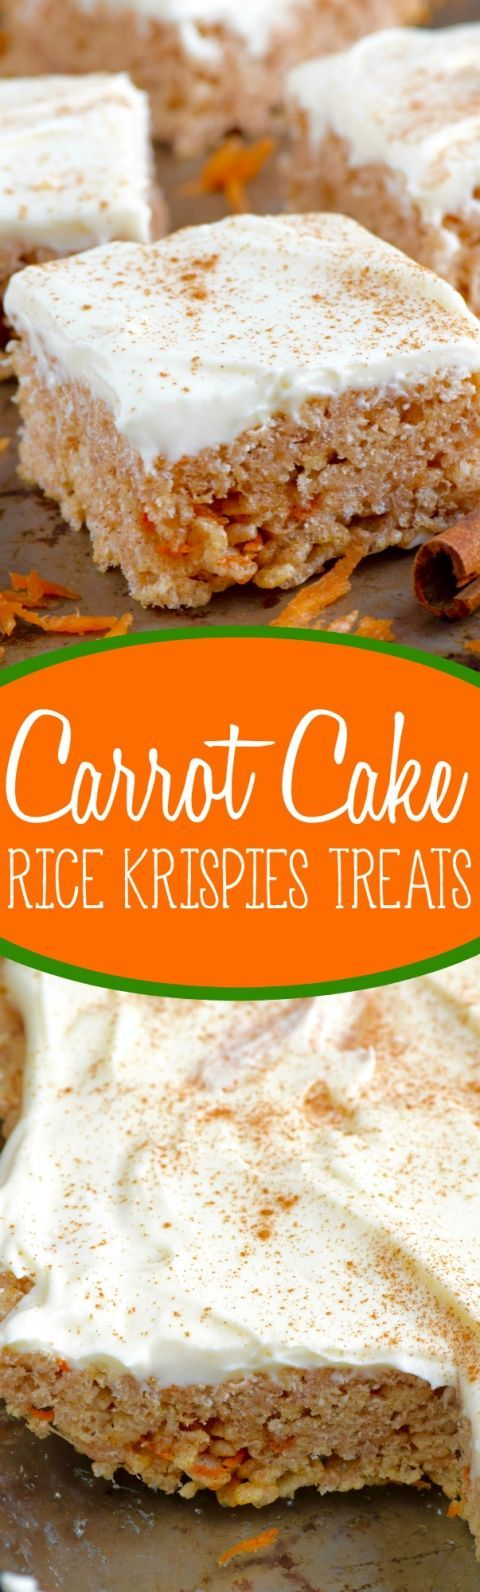 These Carrot Cake Rice Krispies® Treats are an absolutely amazing twist on your...   - Treats - #absolutely #Amazing #Cake #carrot #Krispies #Rice #Treats #twist #ricekrispiestreats